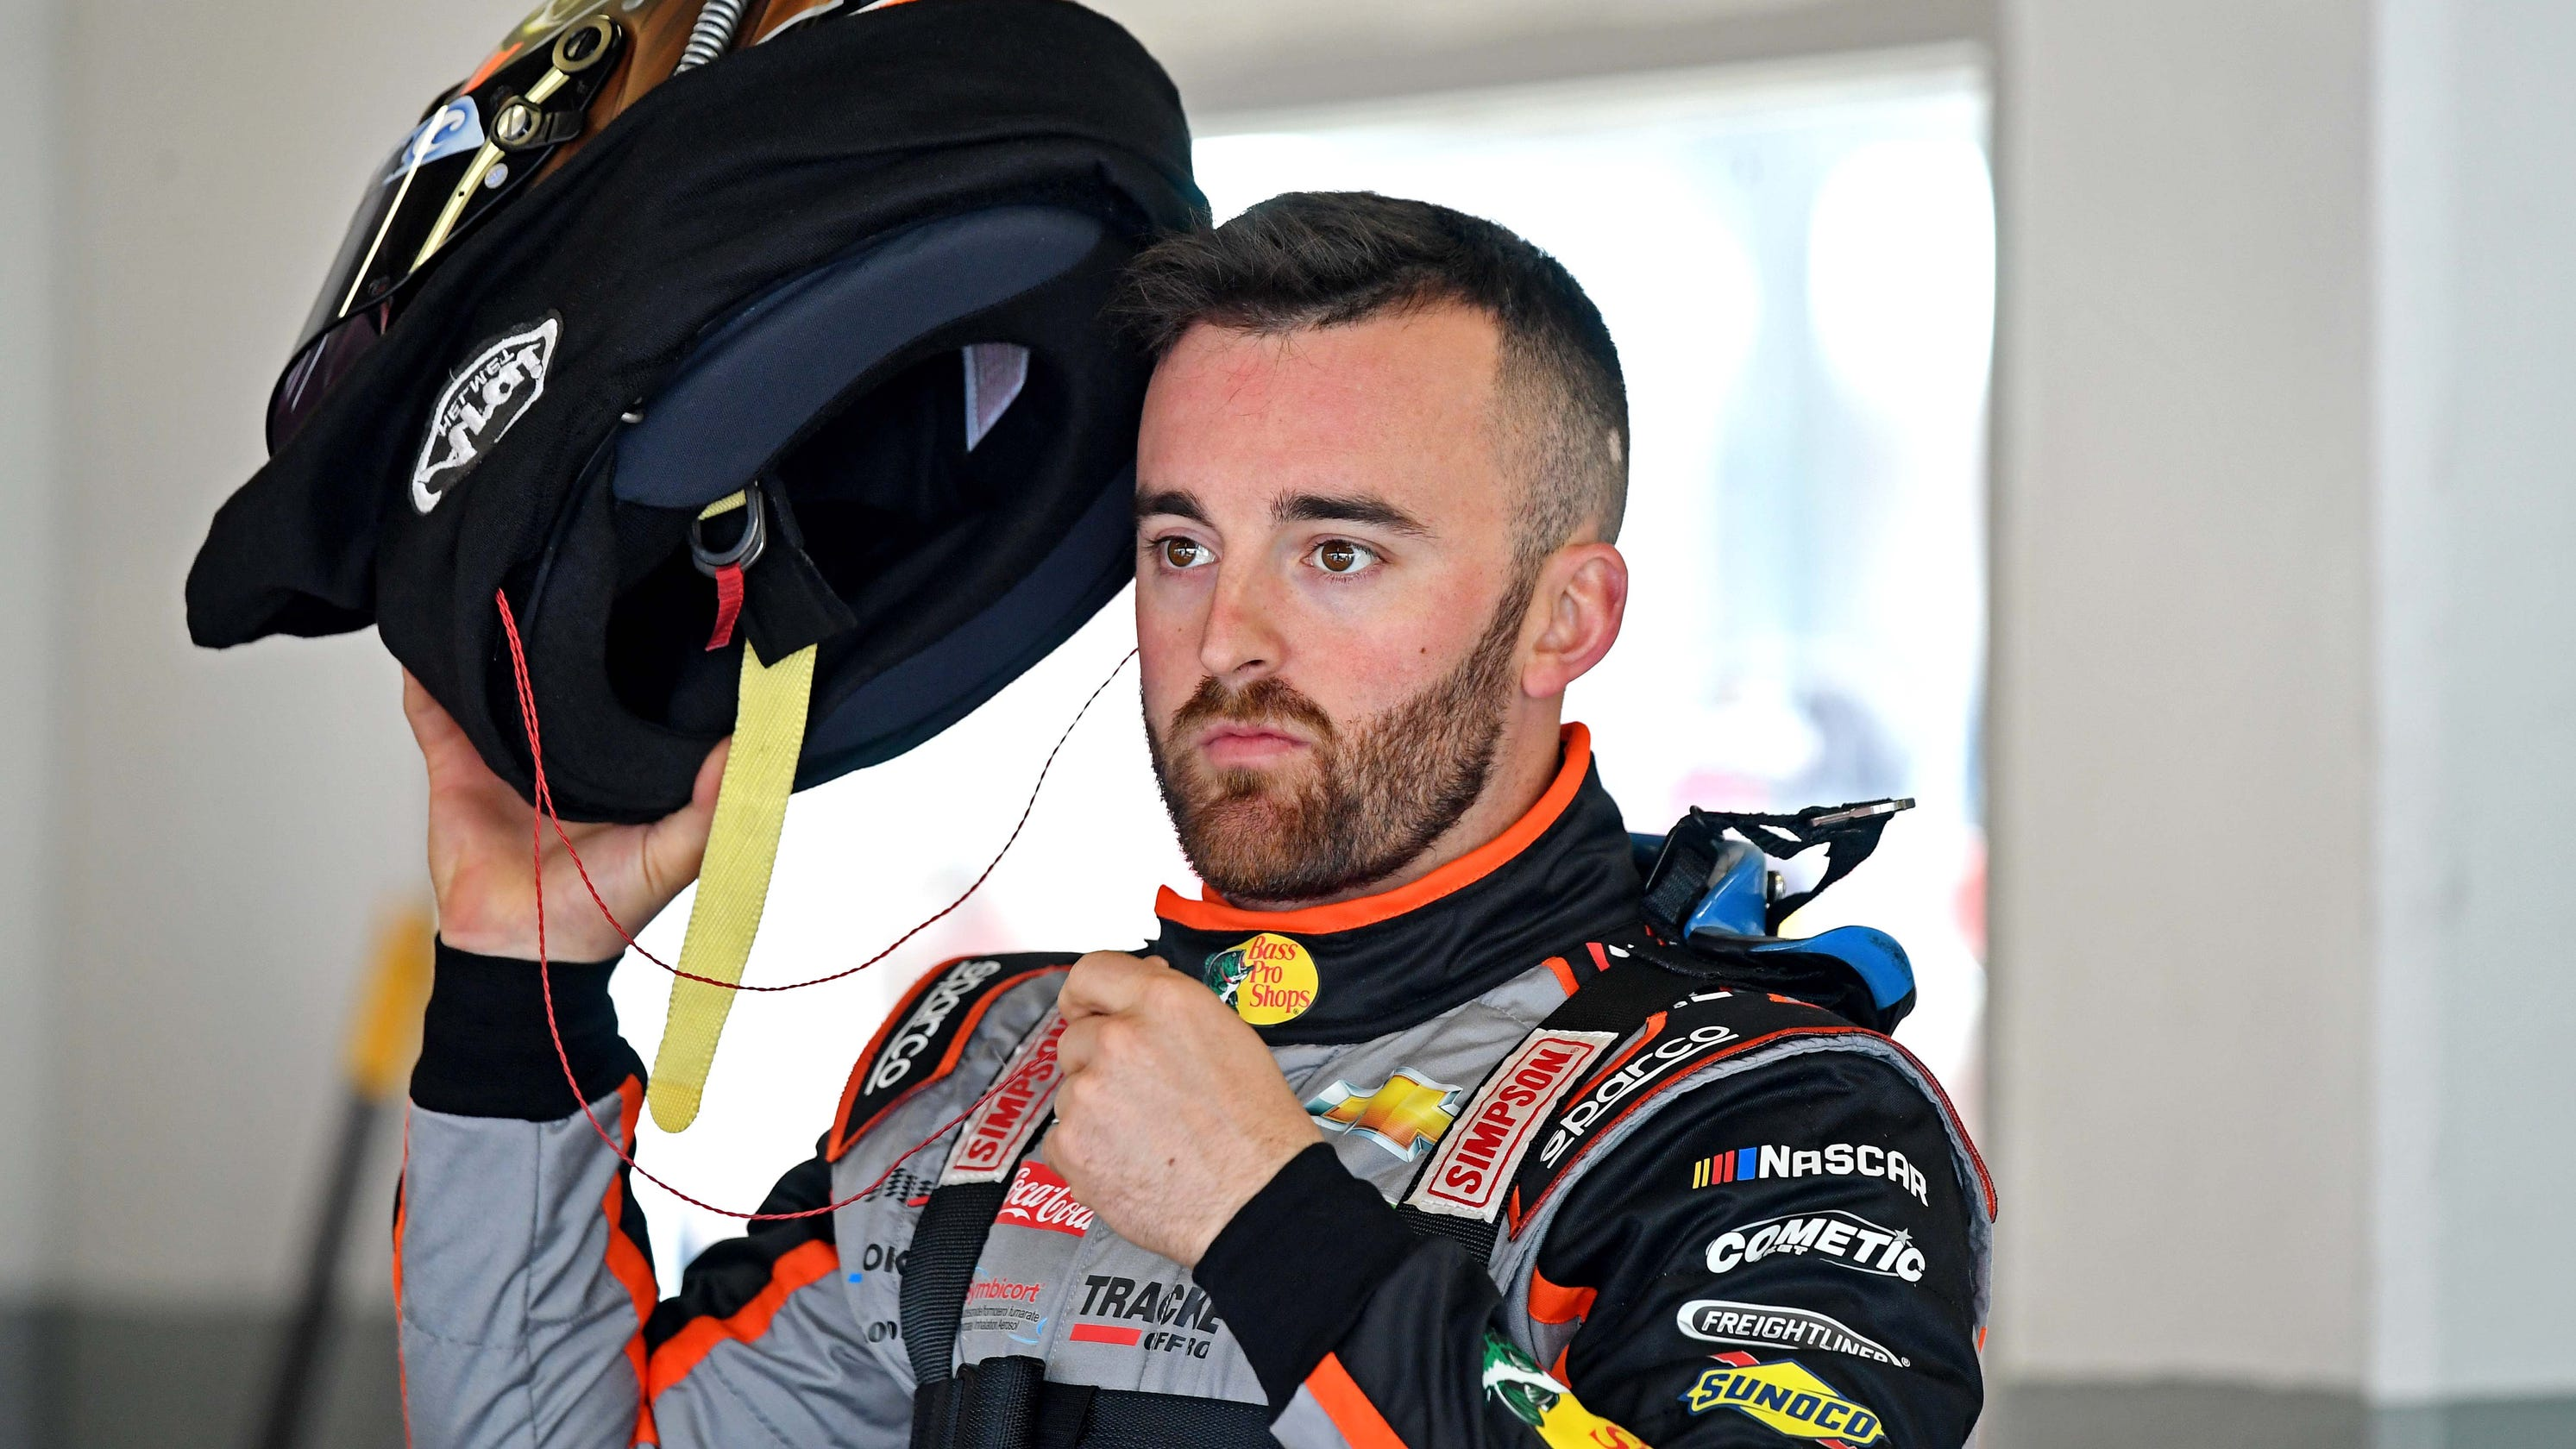 Austin Dillon poised to advance in NASCAR playoffs after 2 strong runs